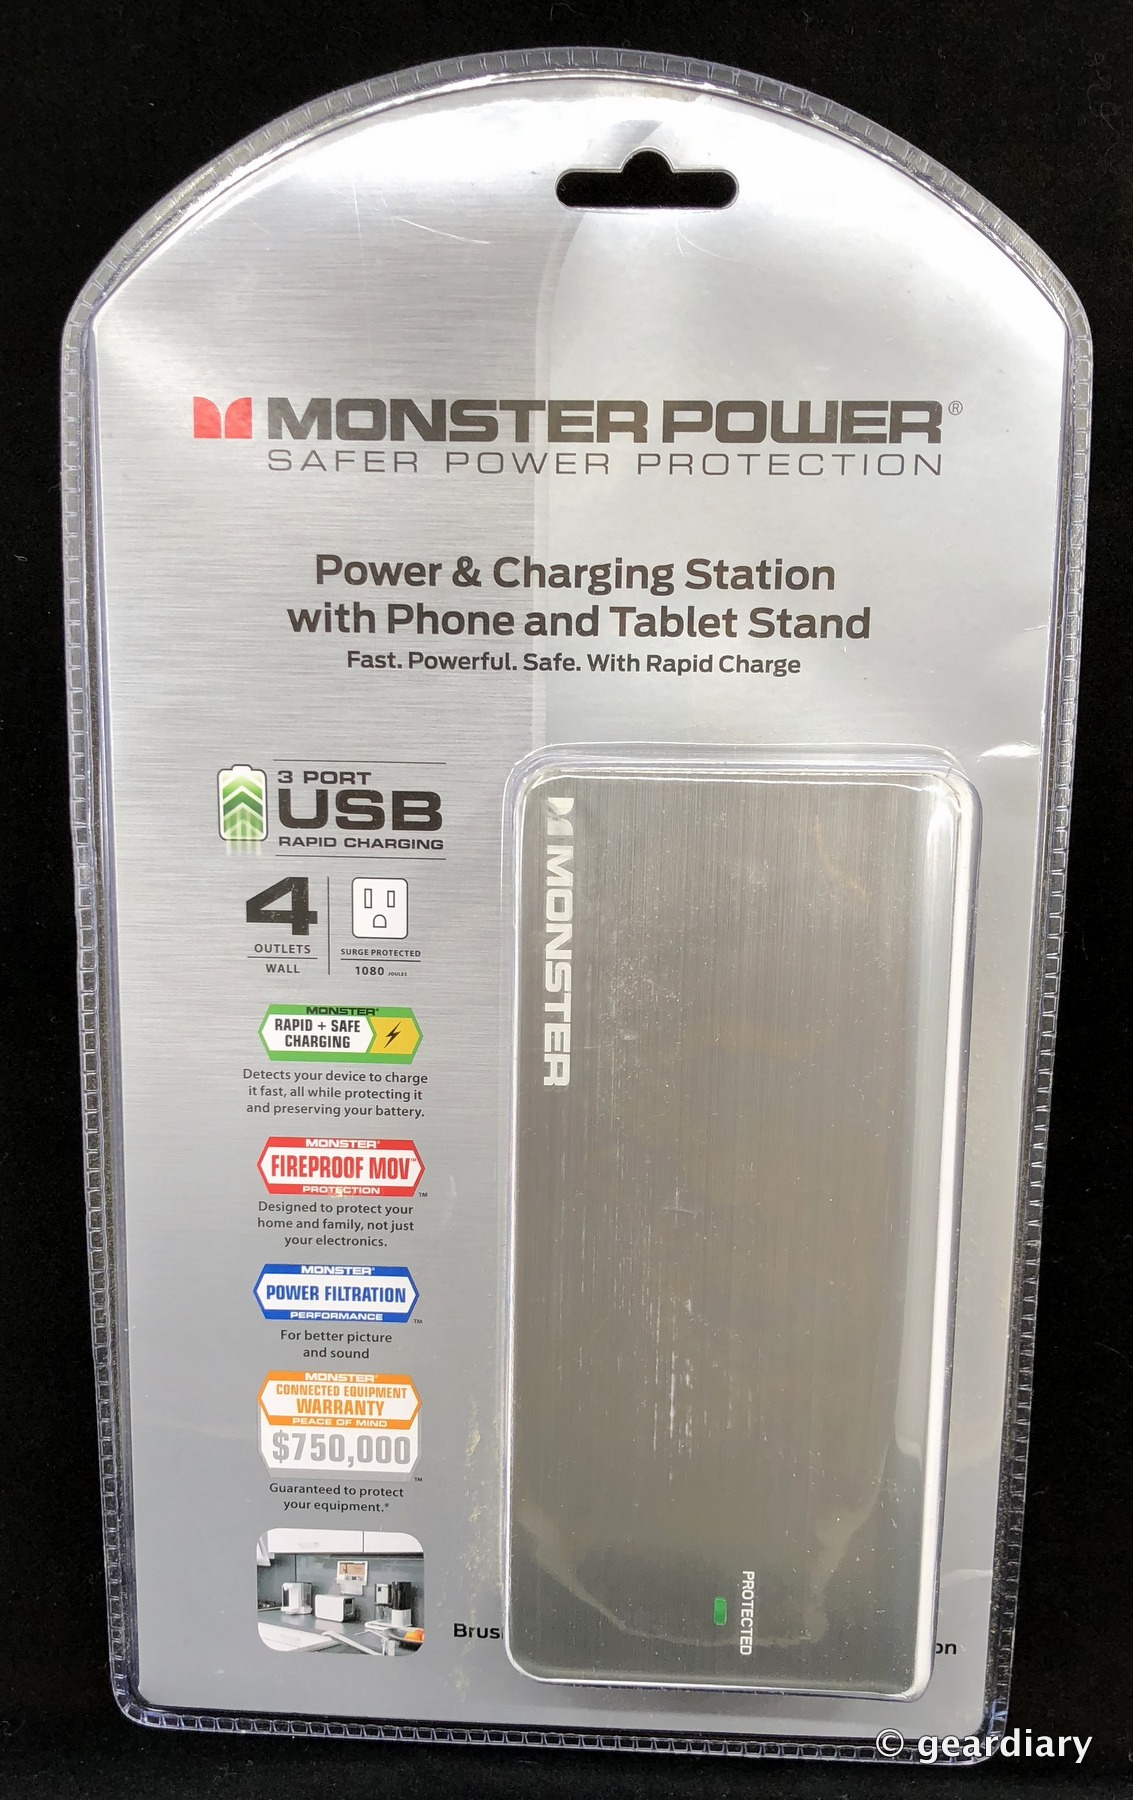 Monster Power & Charging Station with Phone and Tablet Stand Review